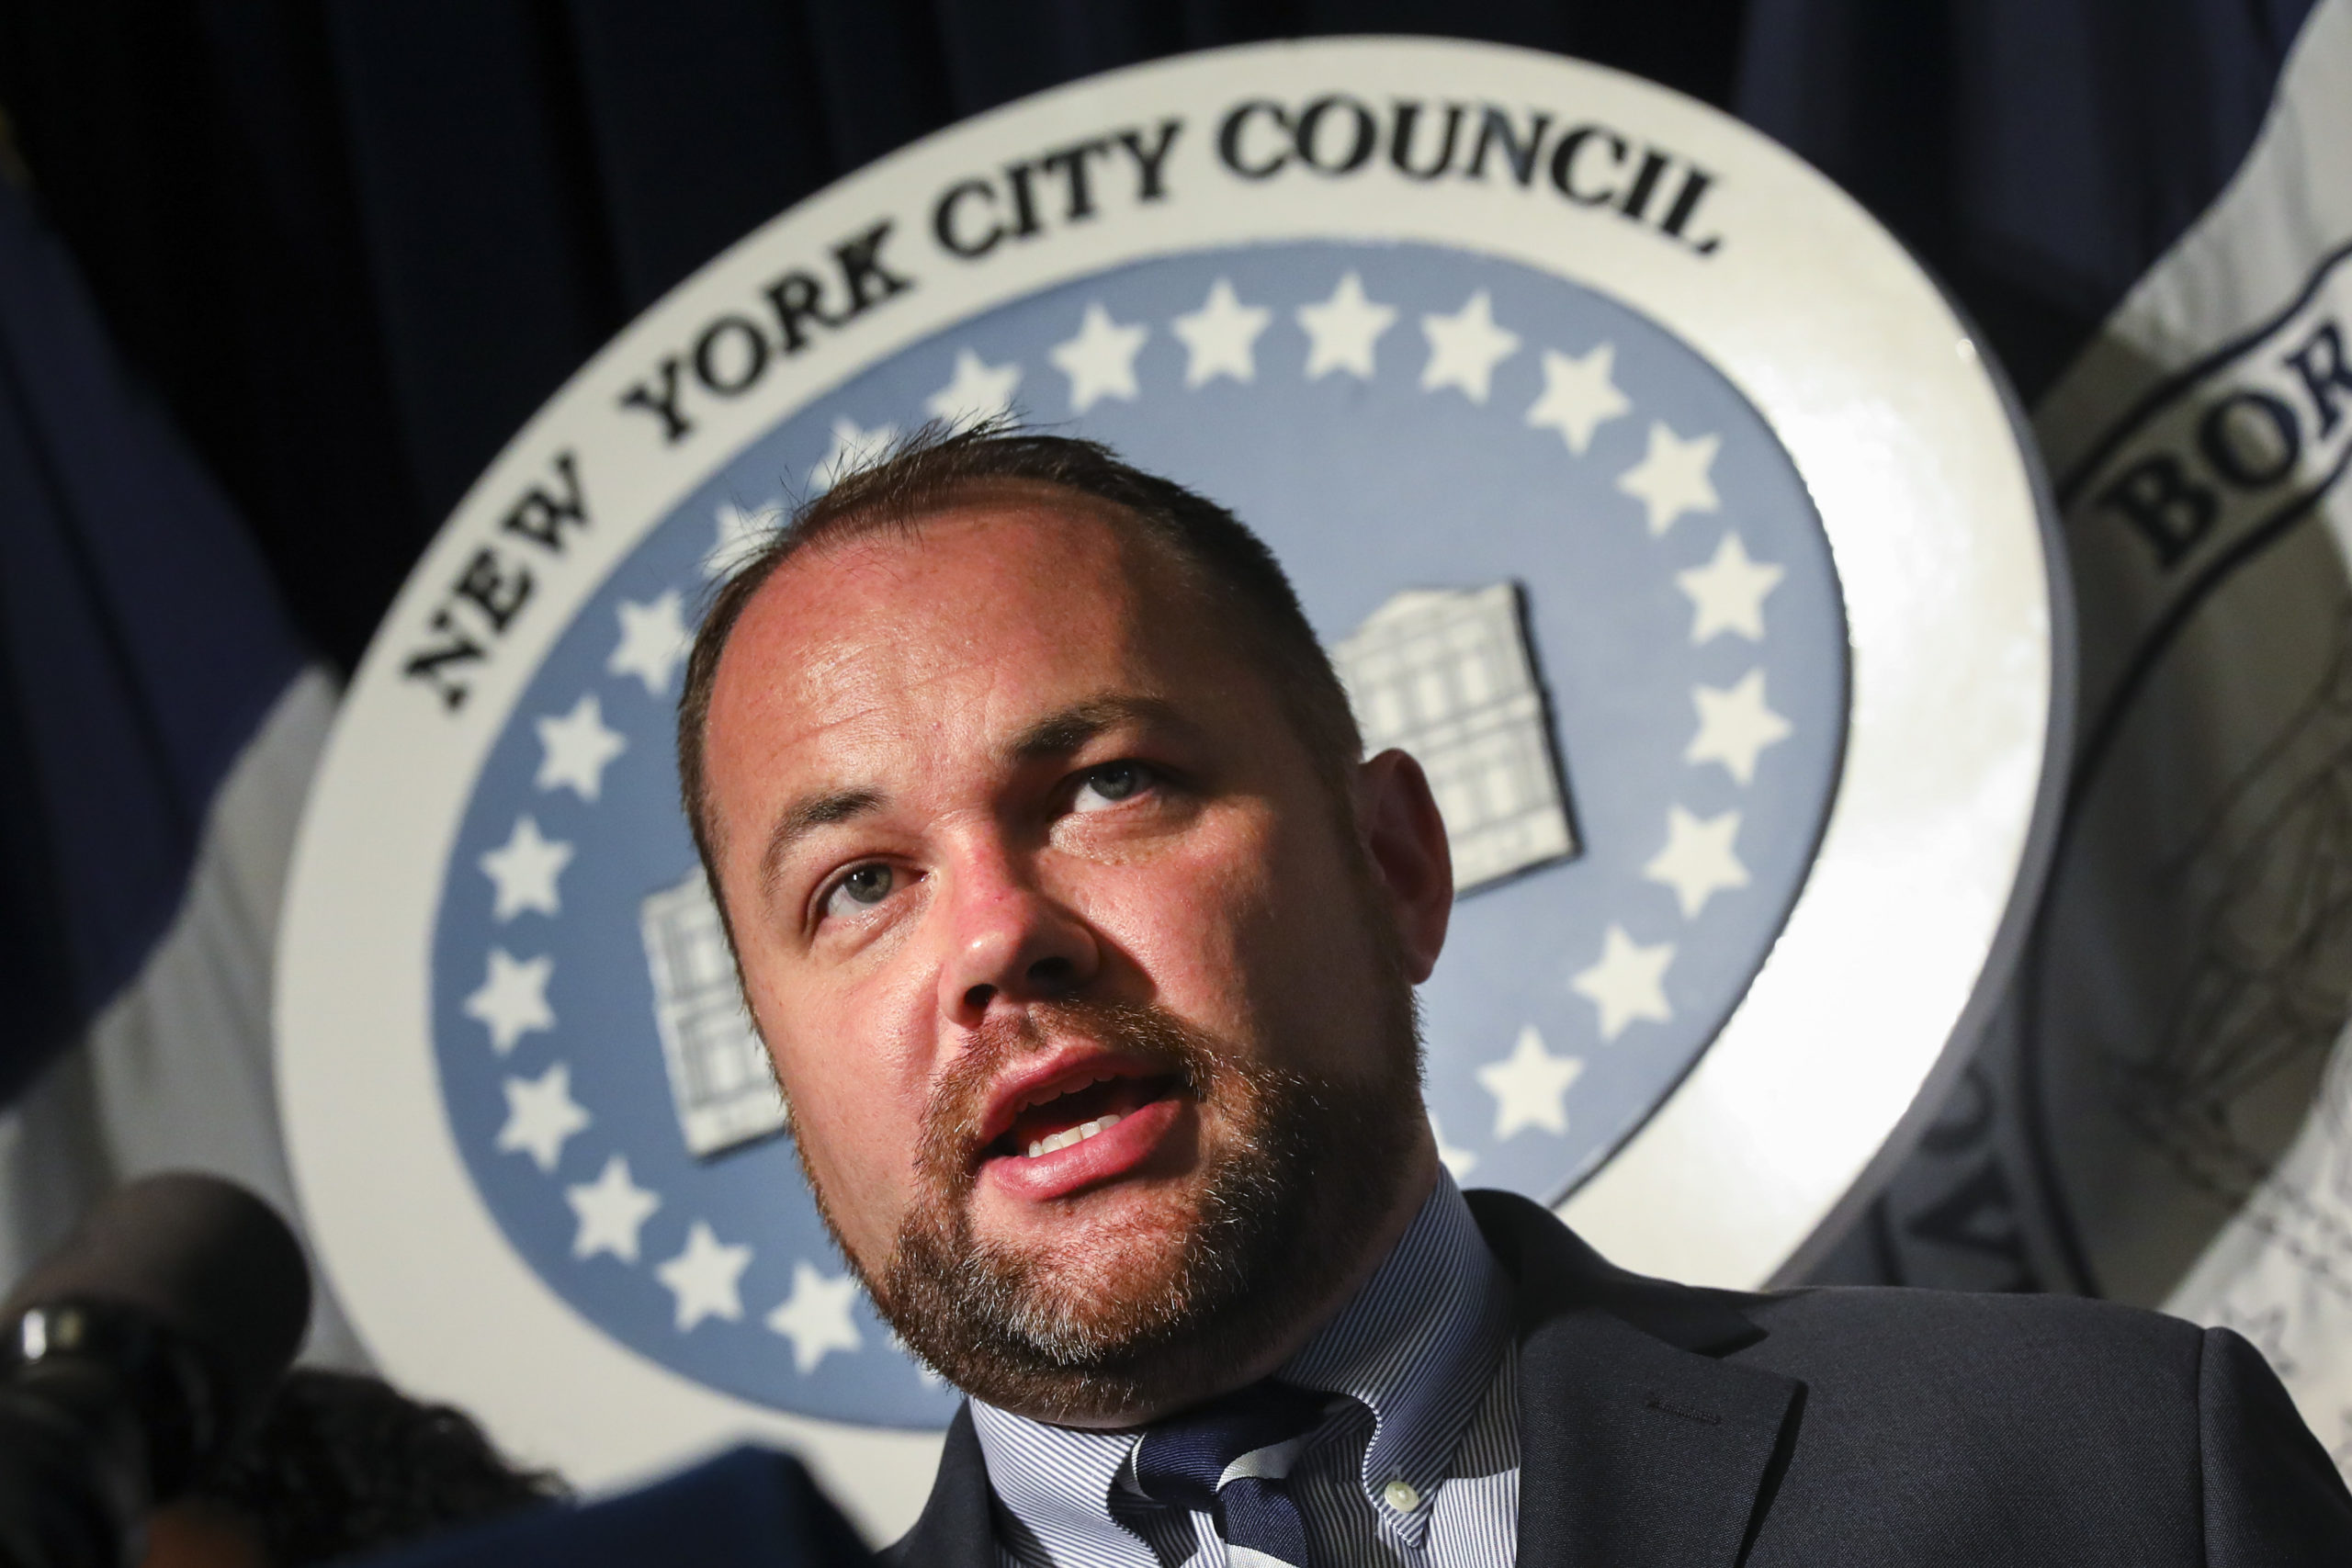 New York City Council Speaker Corey Johnson. (Drew Angerer/Getty Images)